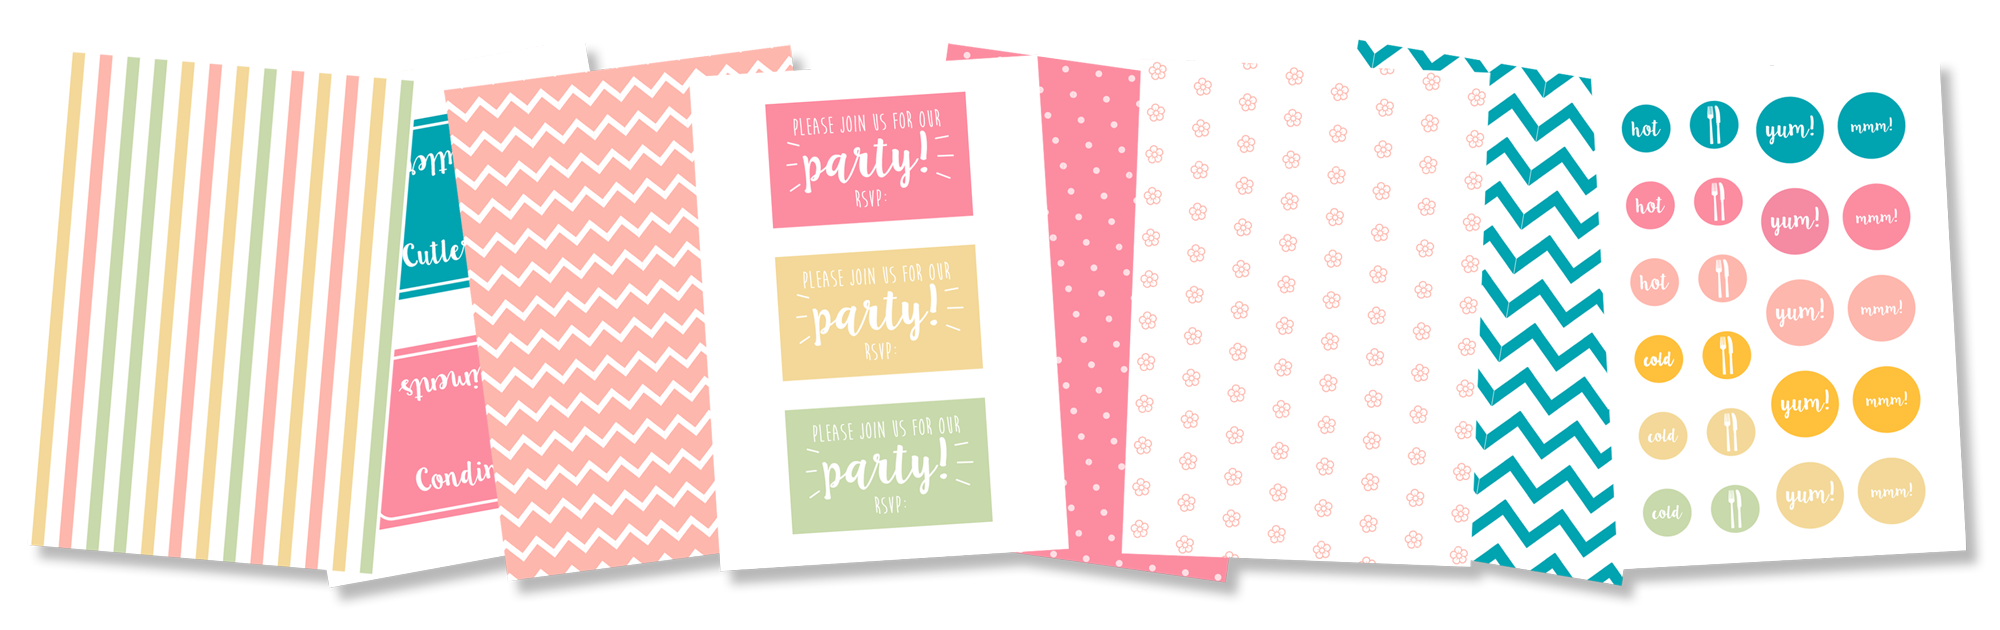 Garden Party pack download